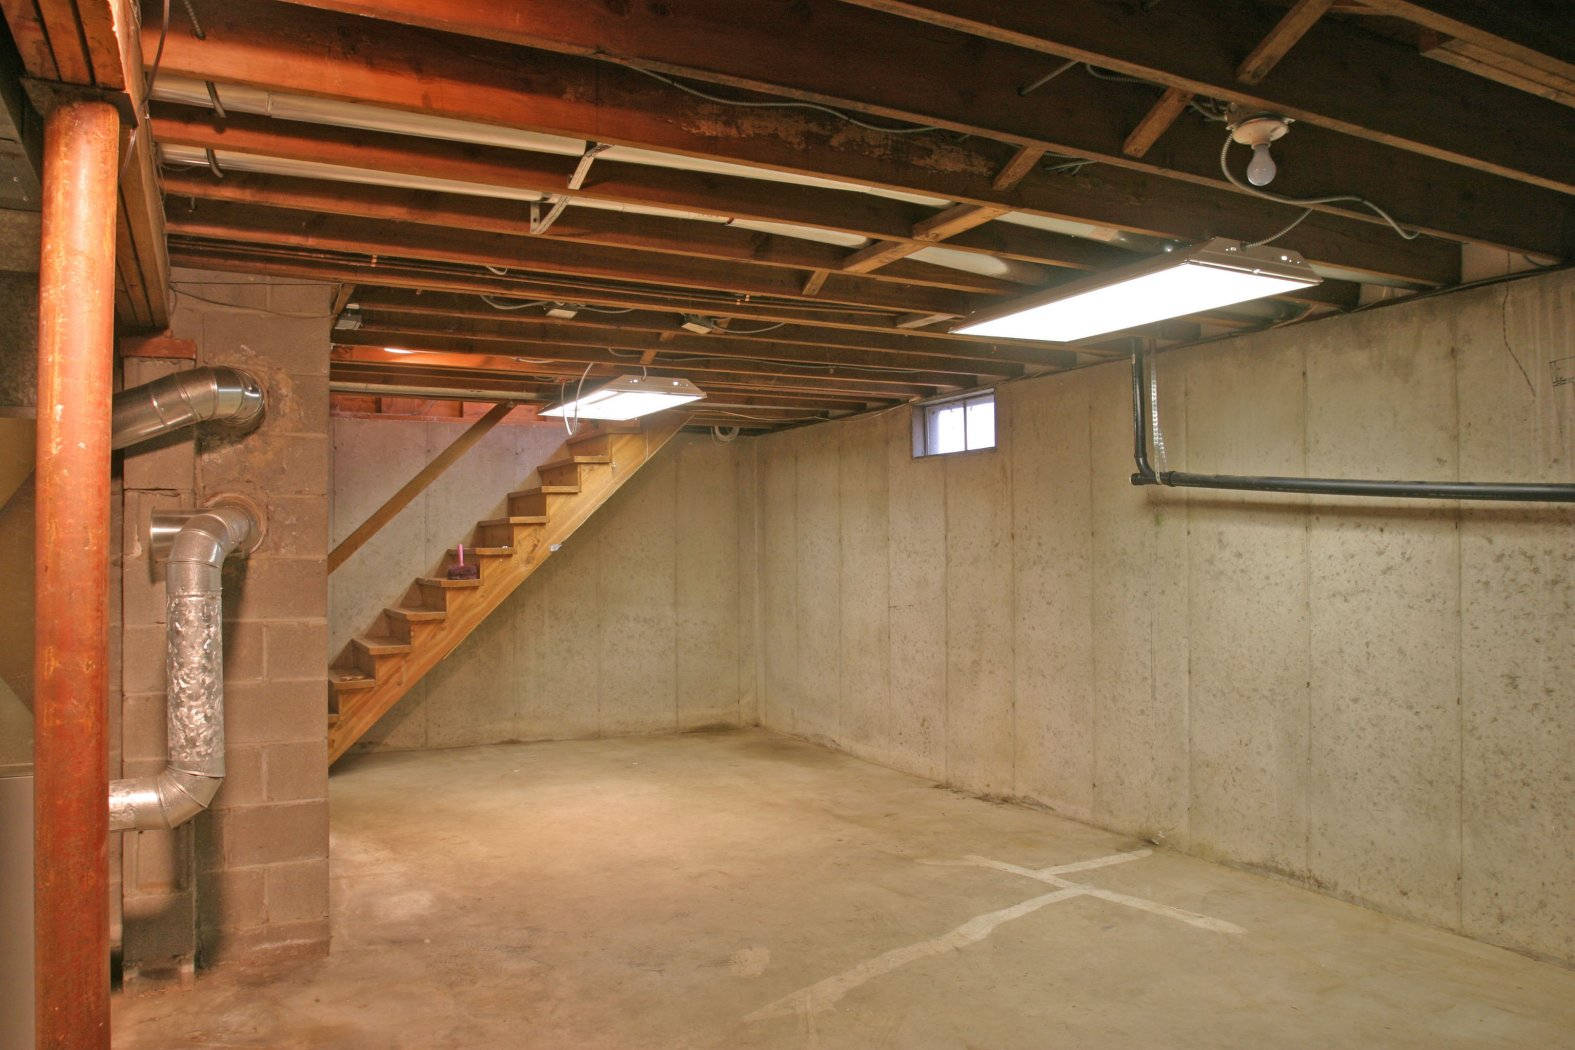 How A Finished Basement Can Increase Your Home Value By $50 To 70k |  Drywall Attic Insulation Contractor Kitchener Nikom Construction